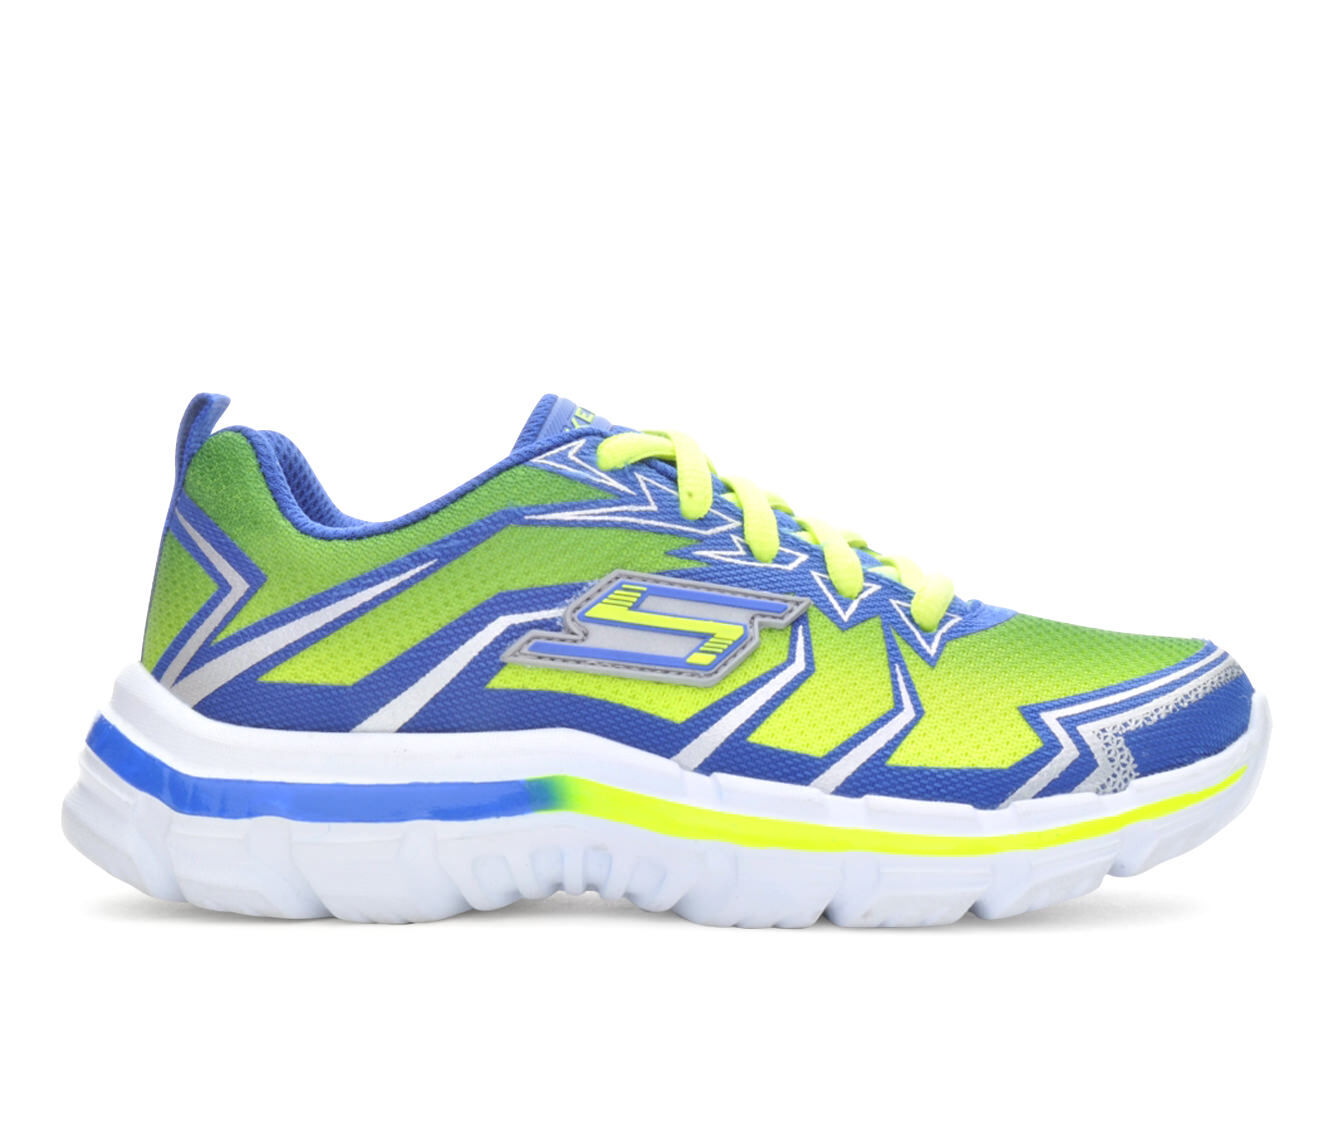 Skechers Shoes  Skechers Nitrate Wide 1057 Boys Sports Shoes LimeBlue